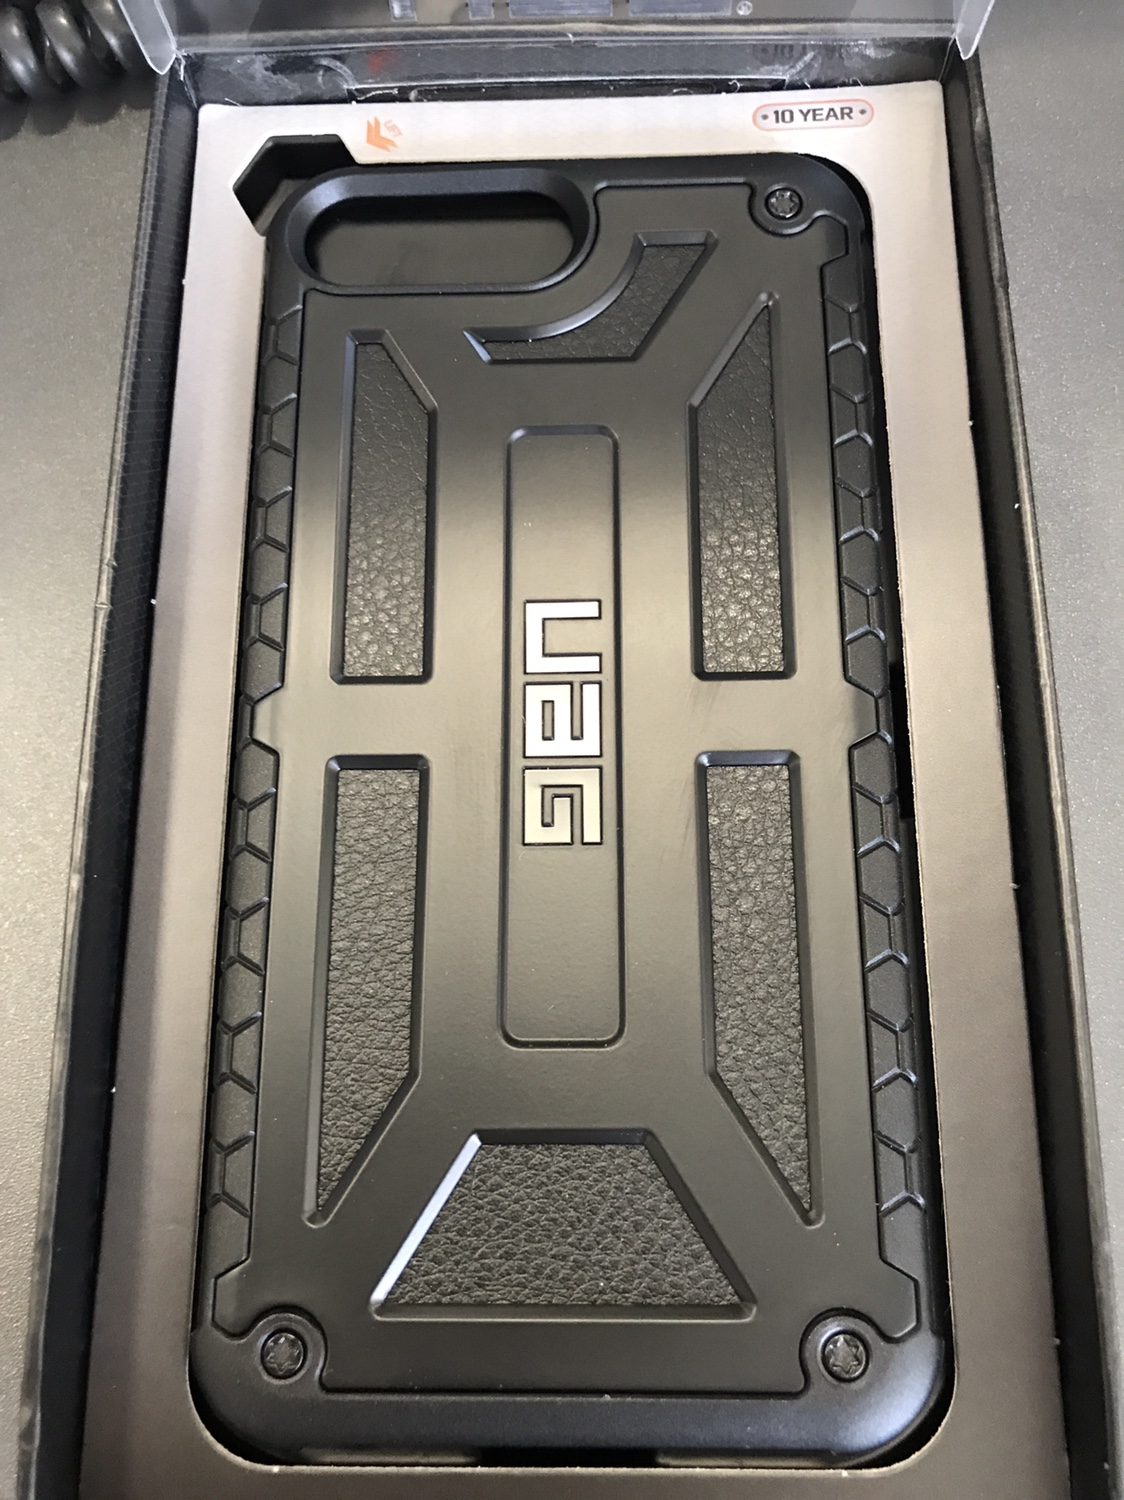 best loved 3cd6a 48092 UAG CASES - Page 3 - iPhone, iPad, iPod Forums at iMore.com